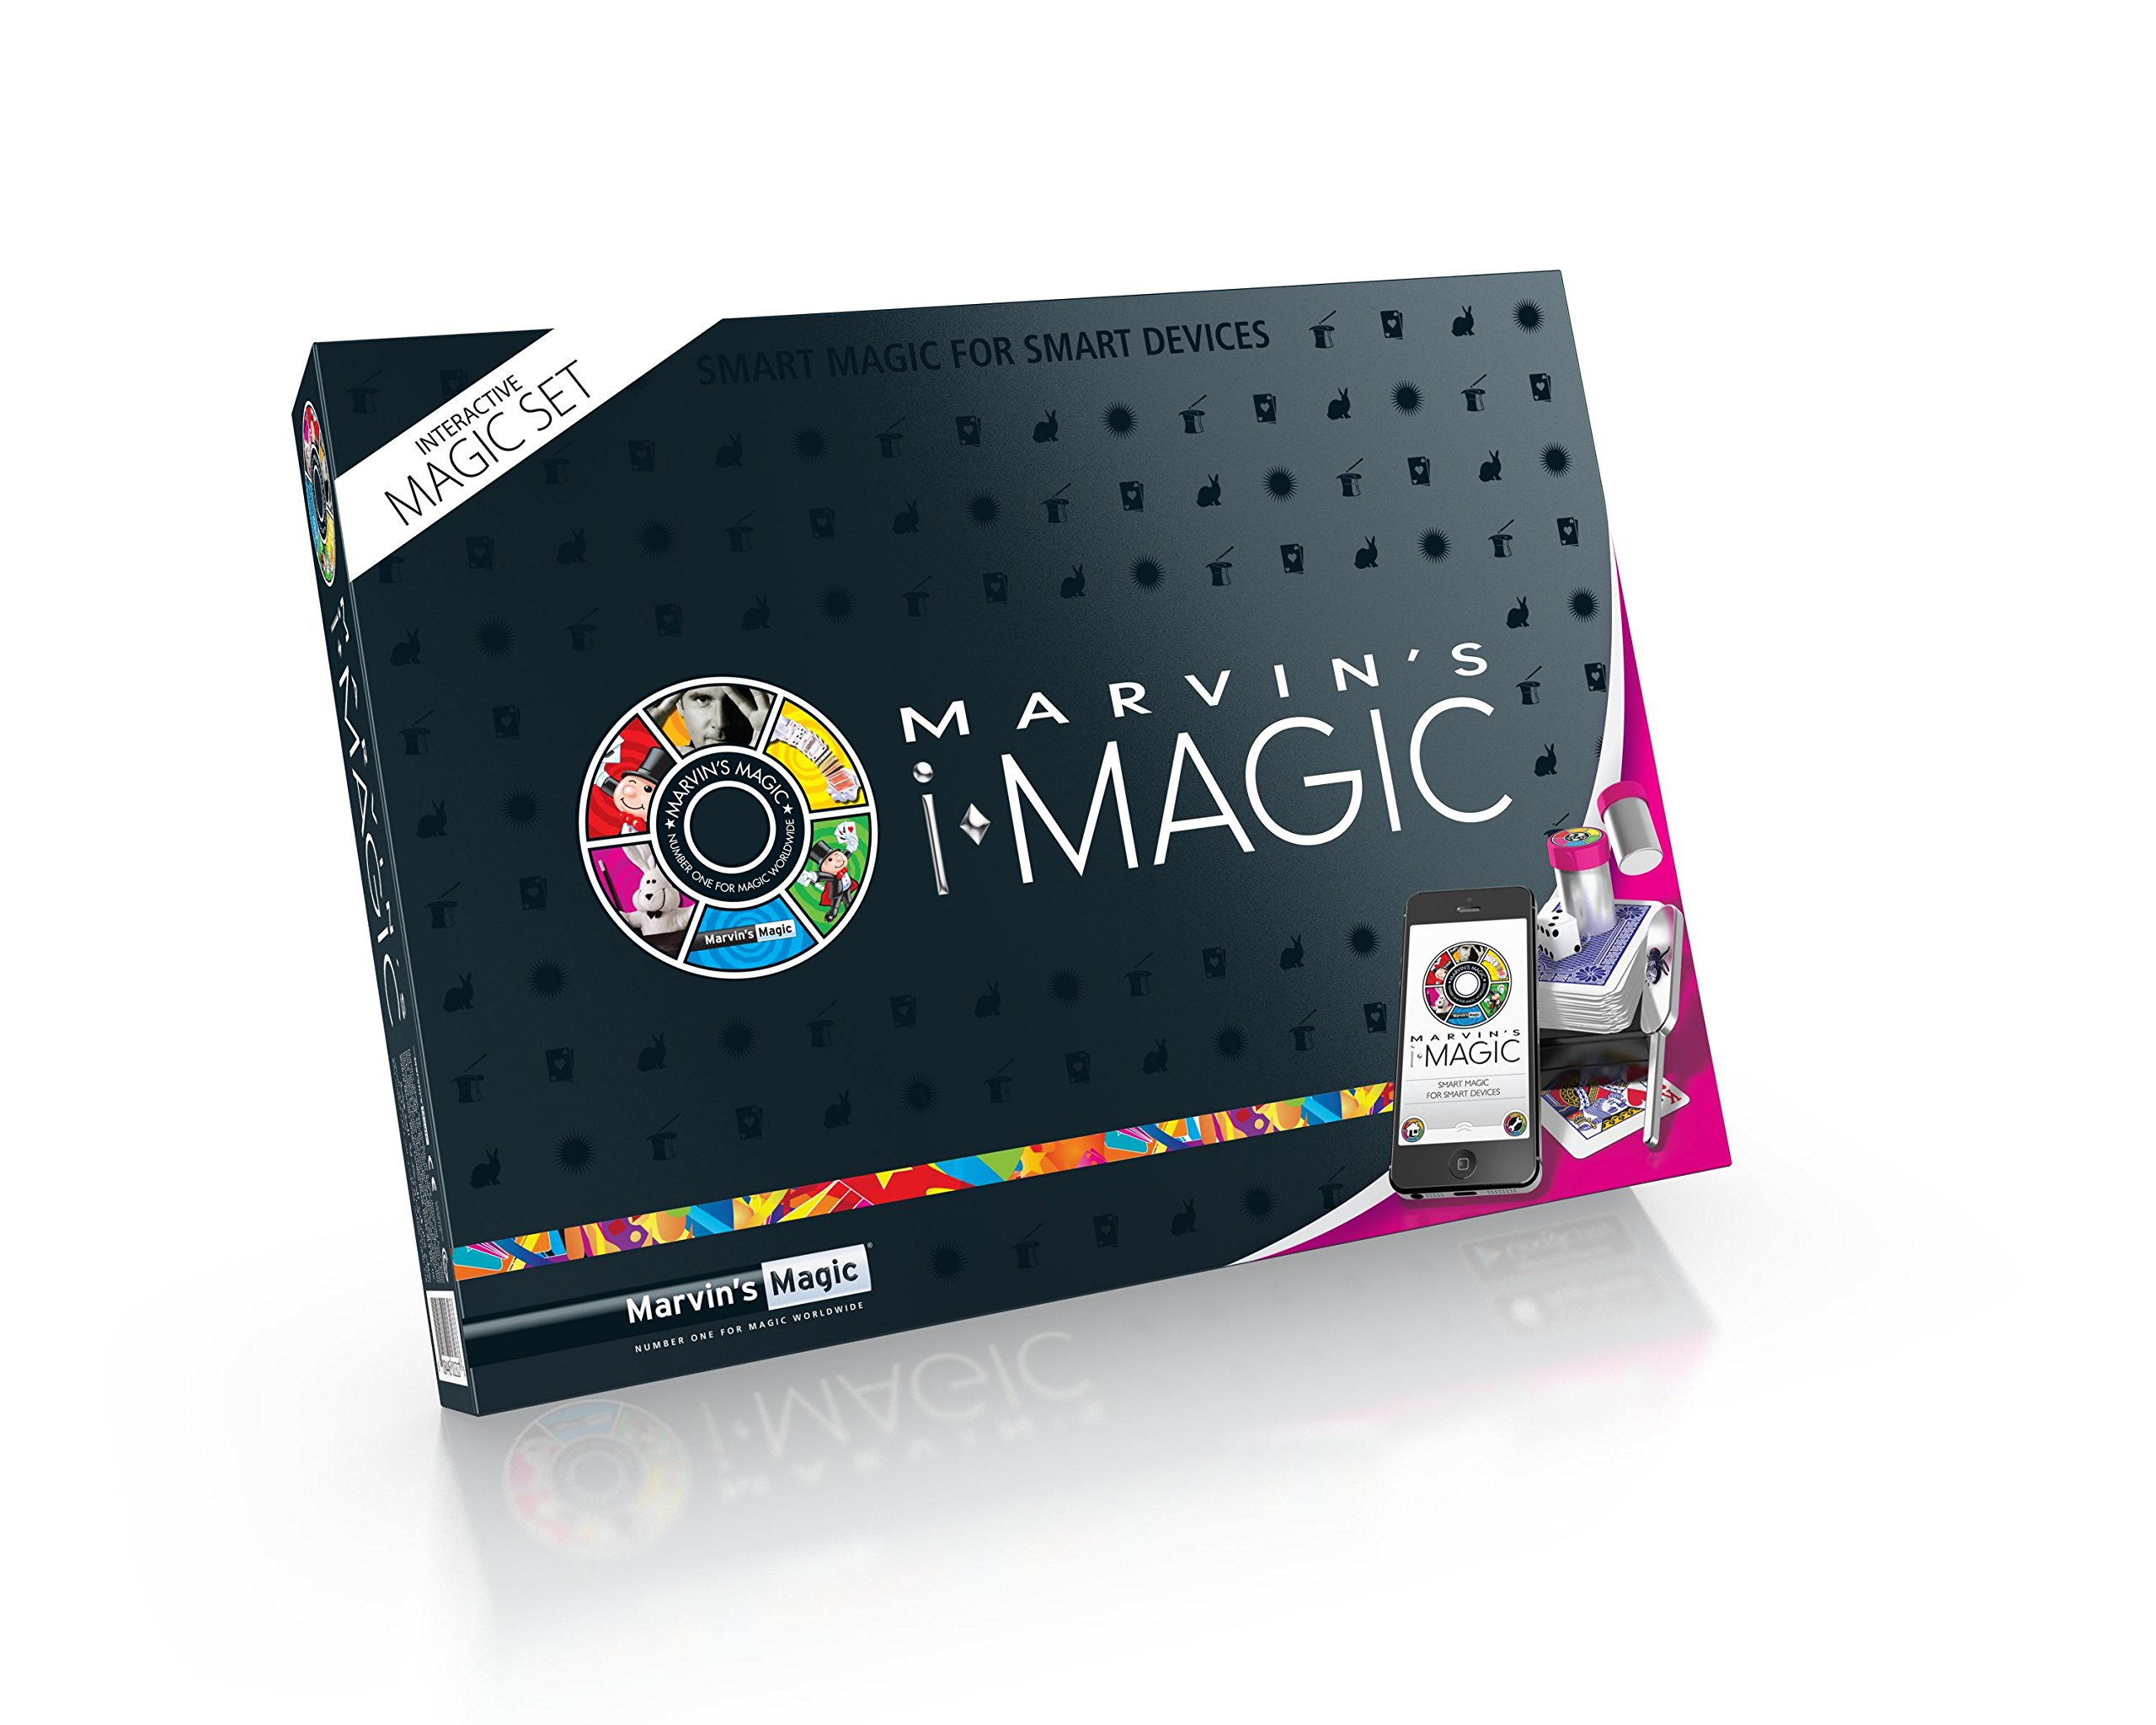 Marvin's Magic iMagic Interactive Box of Tricks by Marvin's Magic